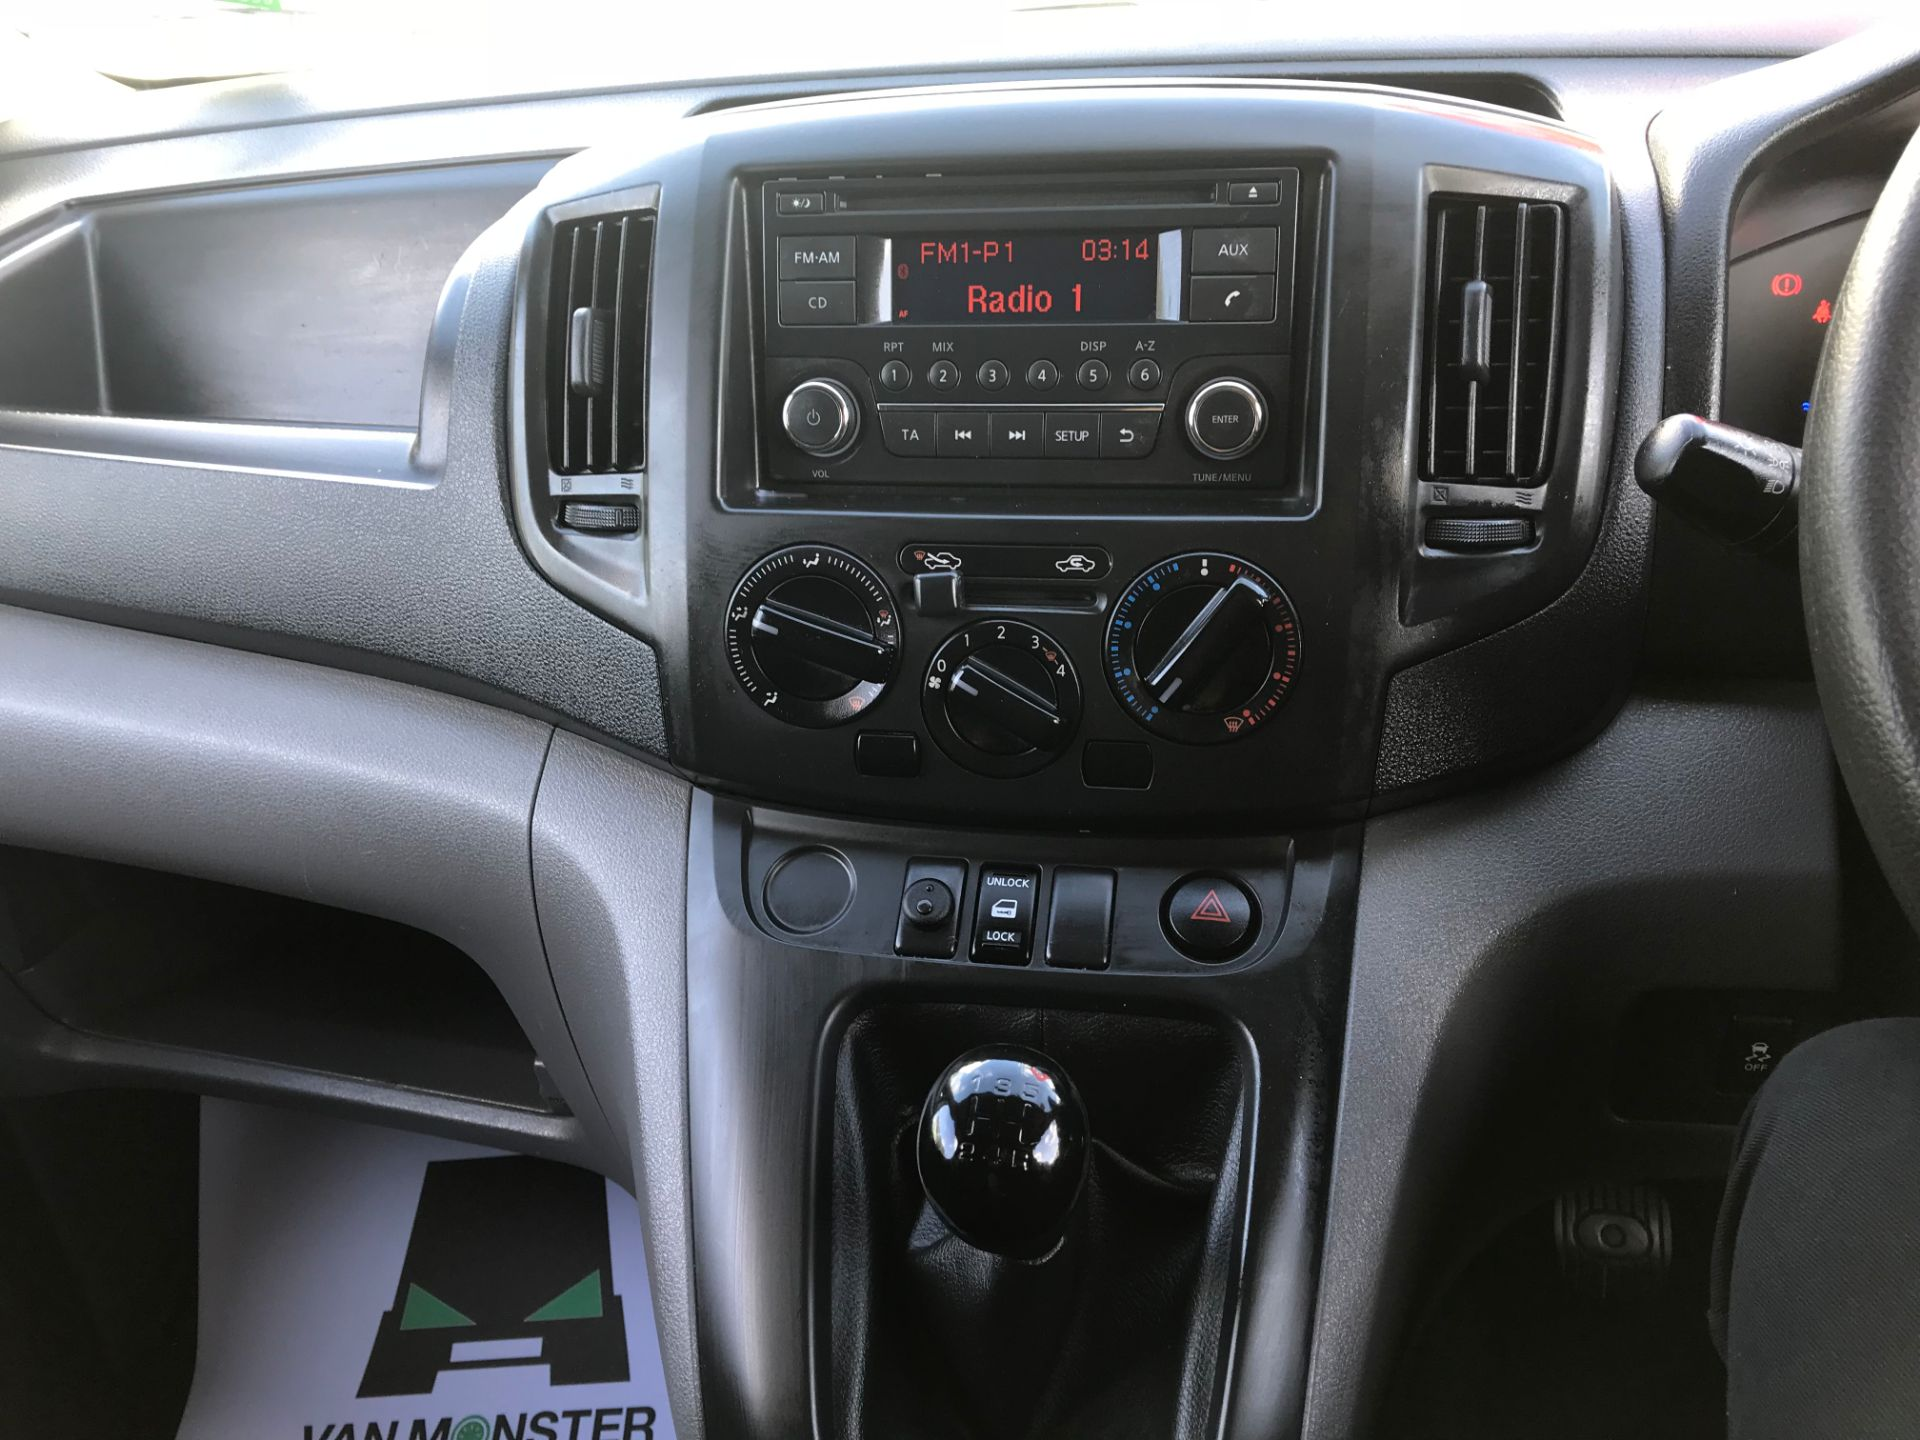 2016 Nissan Nv200 1.5 DCI ACCENTA EURO 5 (DL16HNM) Image 11